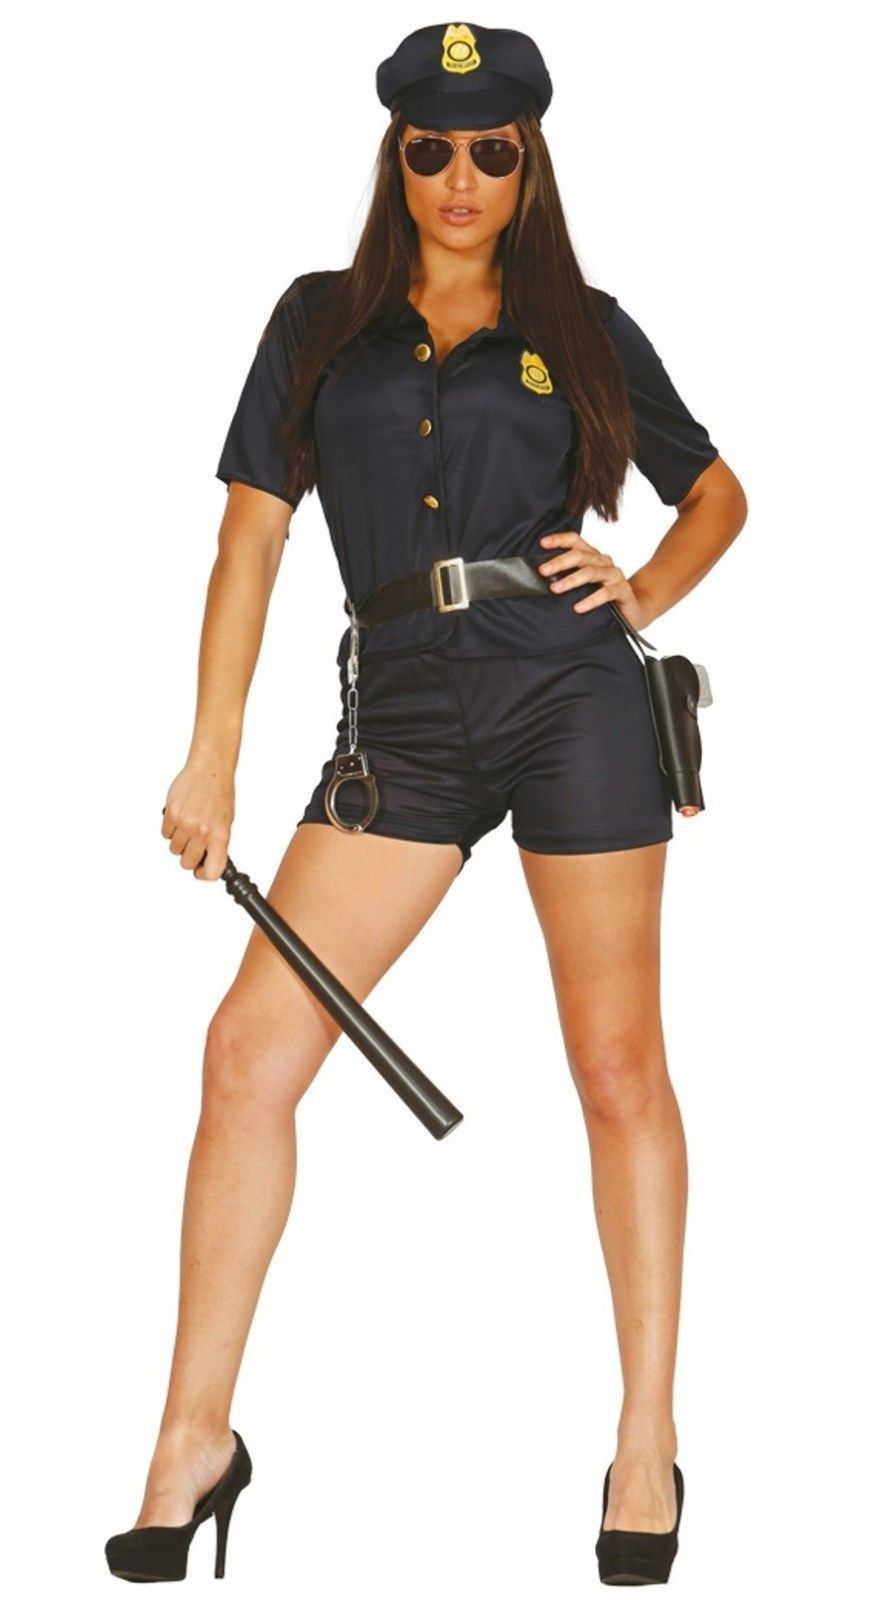 law and order costume